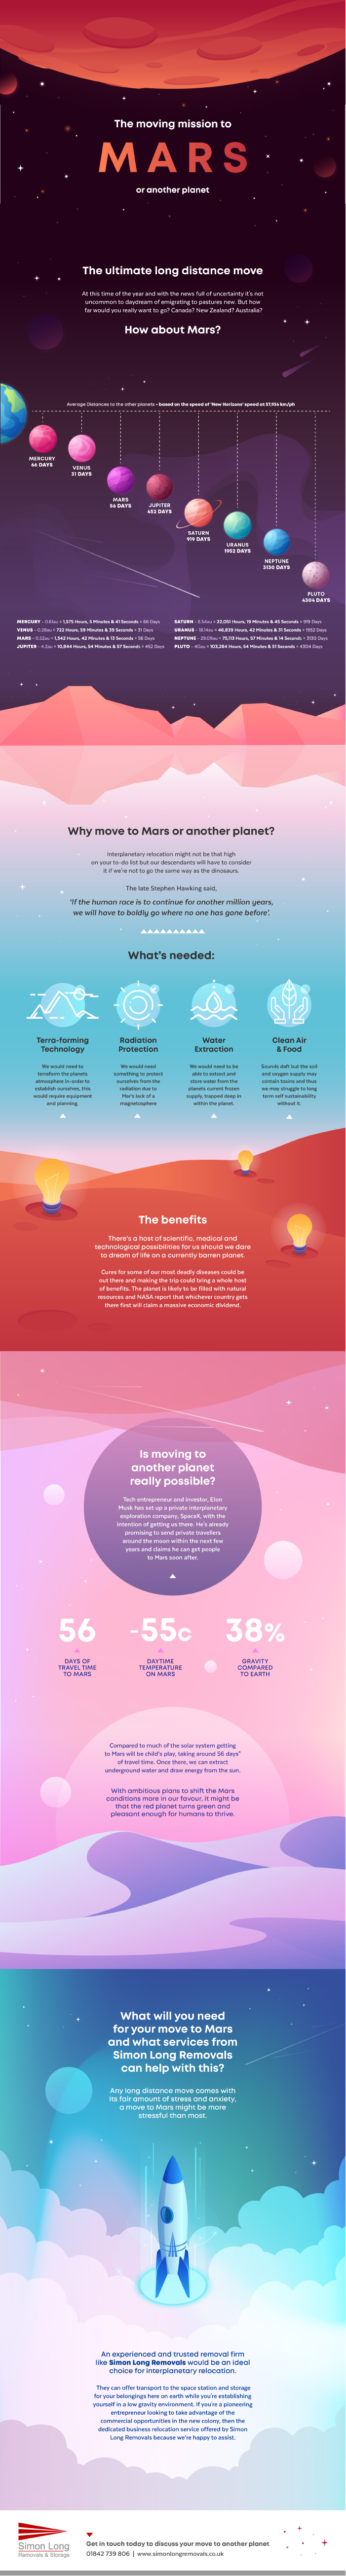 moving mission to mars infographic